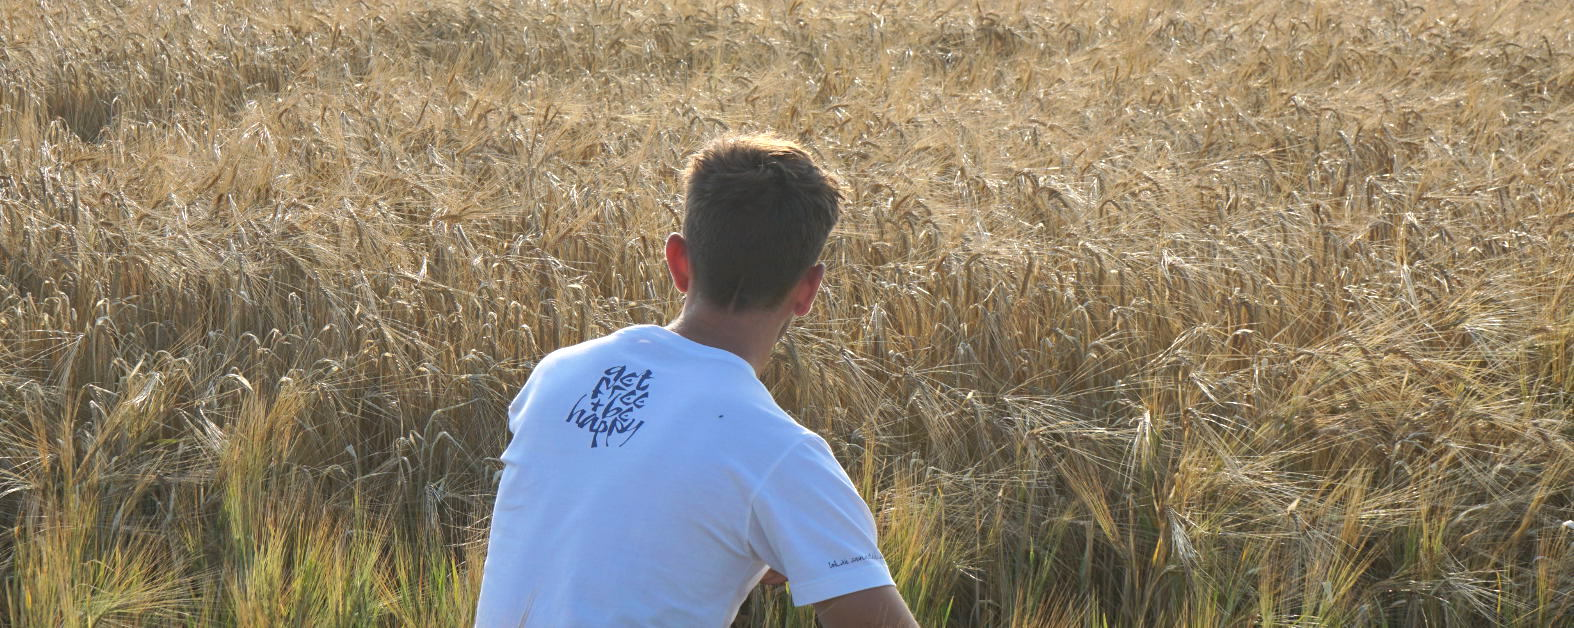 A cornfield photo of the back of a young man the white Sanskrit inspired T-shirt Lokah Samastah Sukhino Bhavantu, showing the back neck print that says 'get free & be happy.'